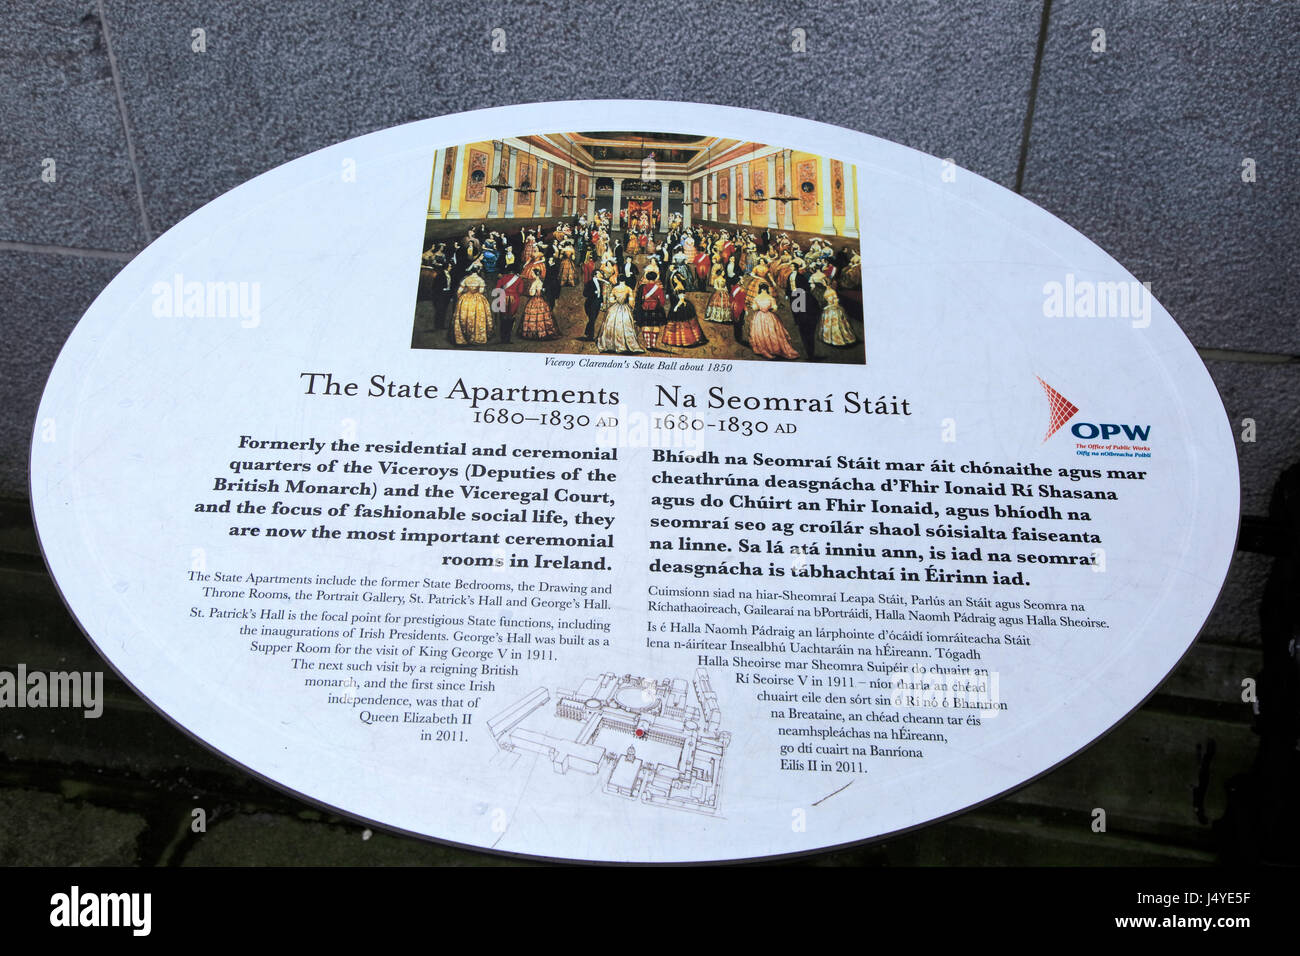 Information panel about the State Apartments Dublin castle, Ireland, Irish Republic - Stock Image